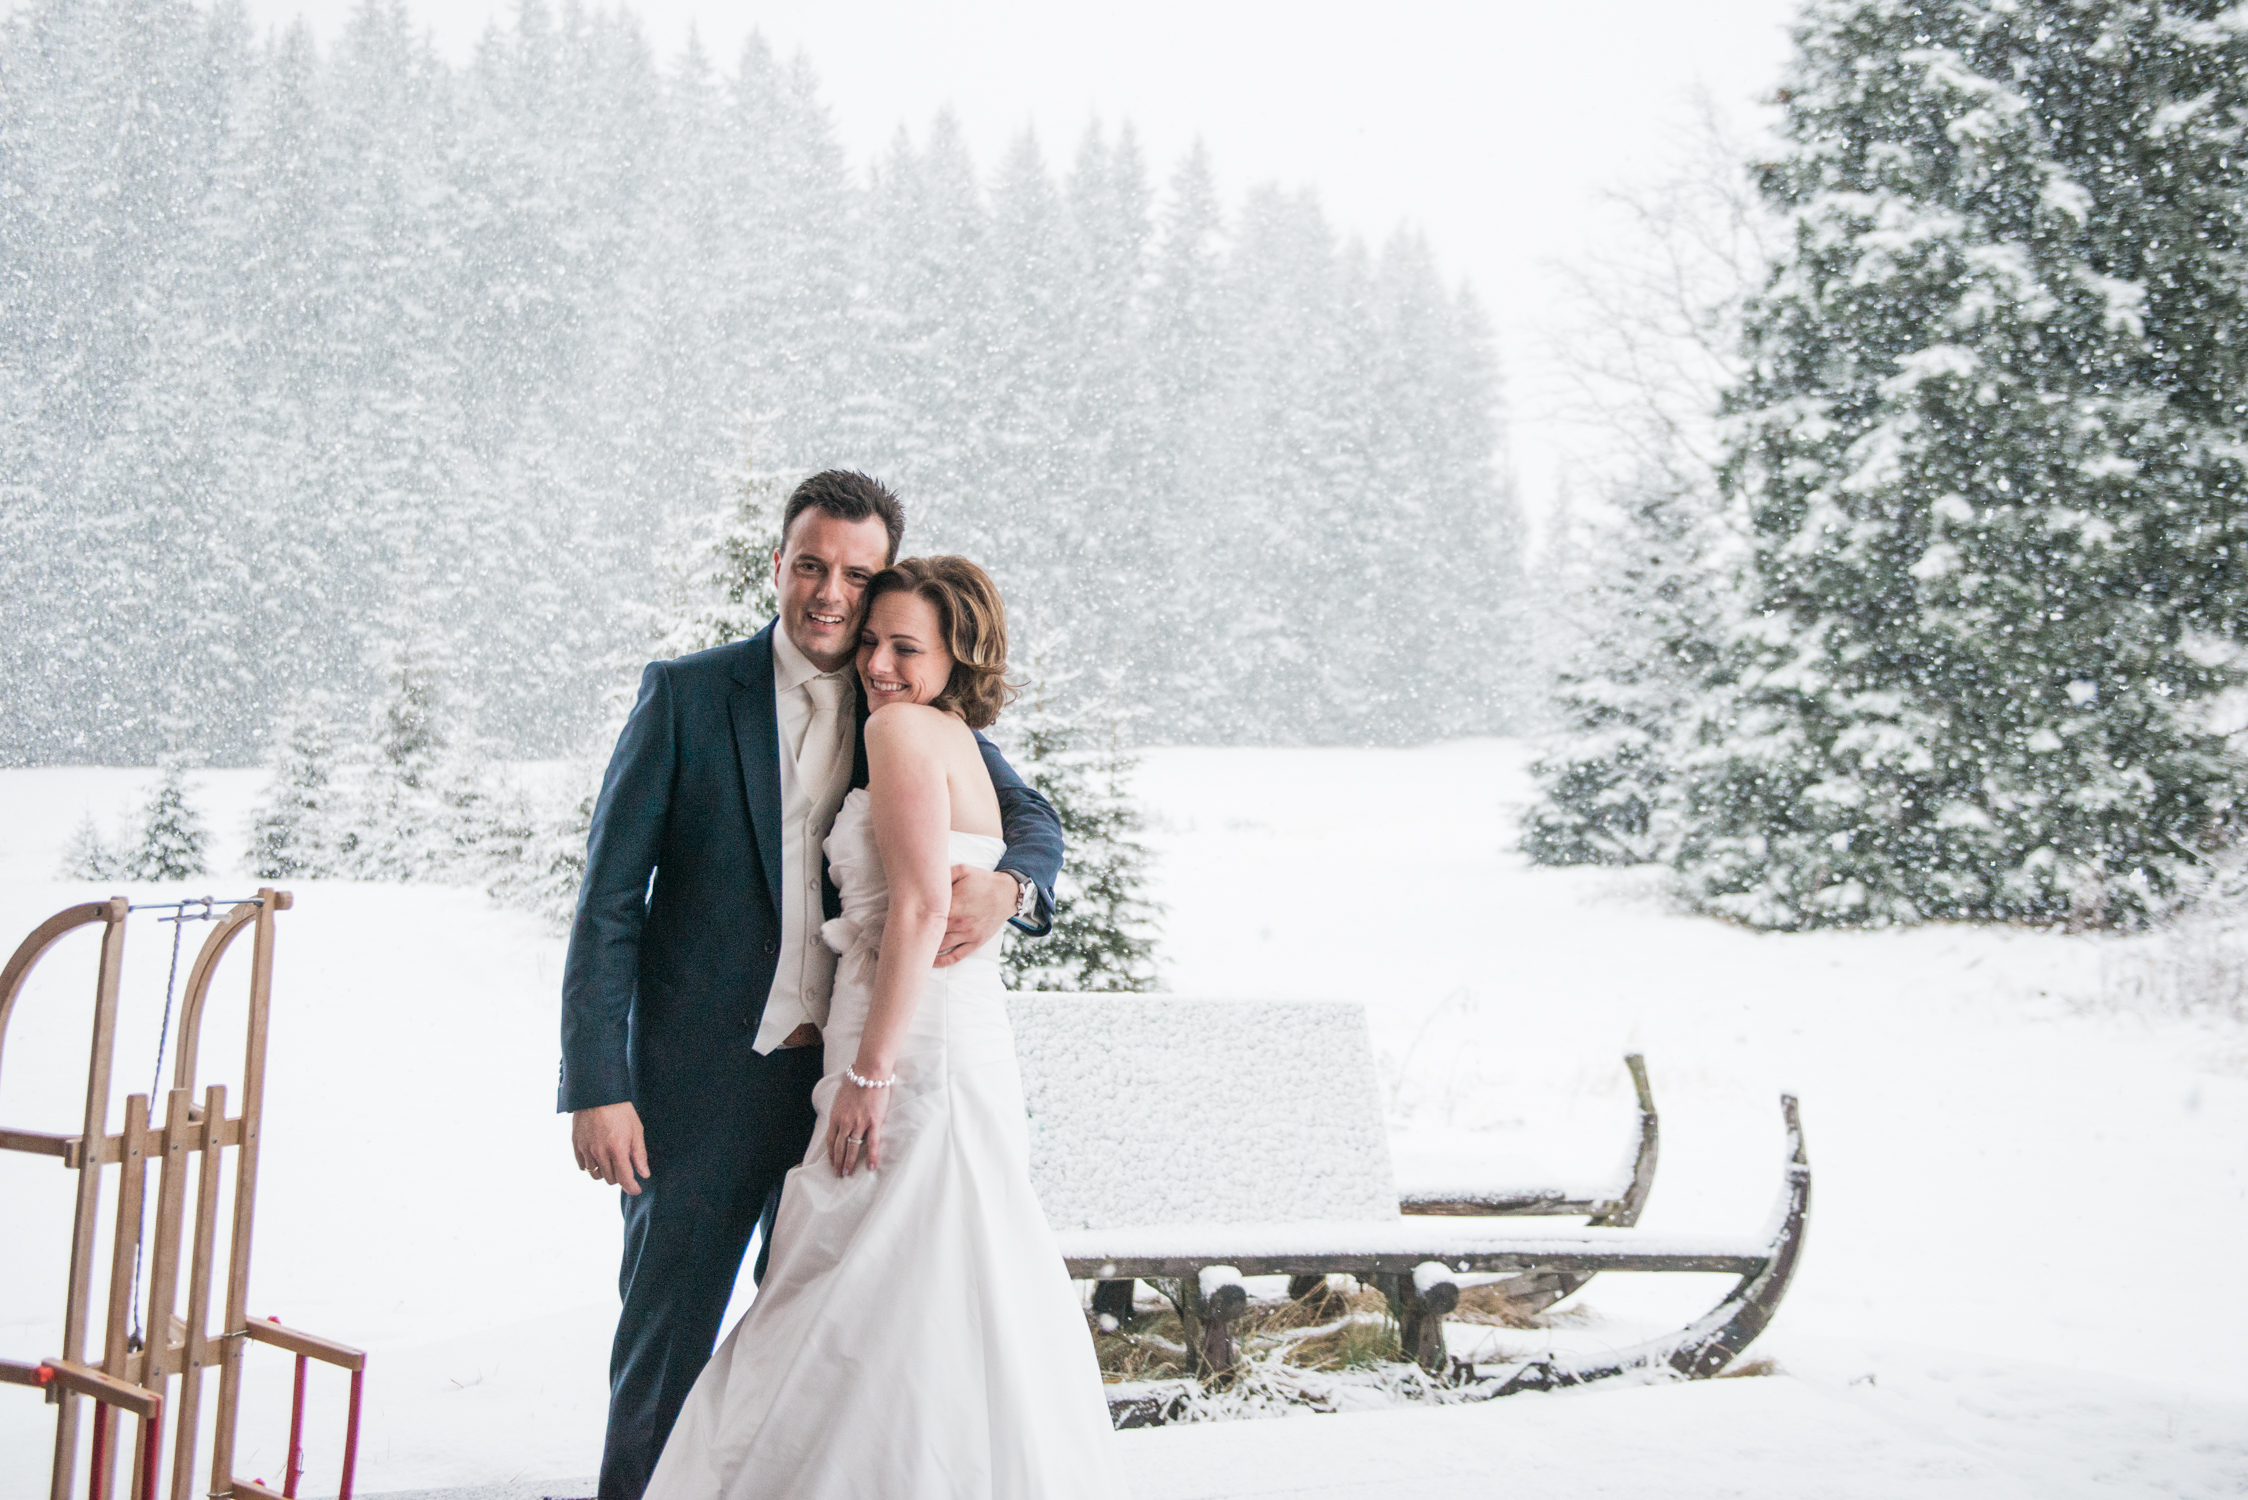 Tips for an amazing winter wedding - Wit Photography   Worldwide ...